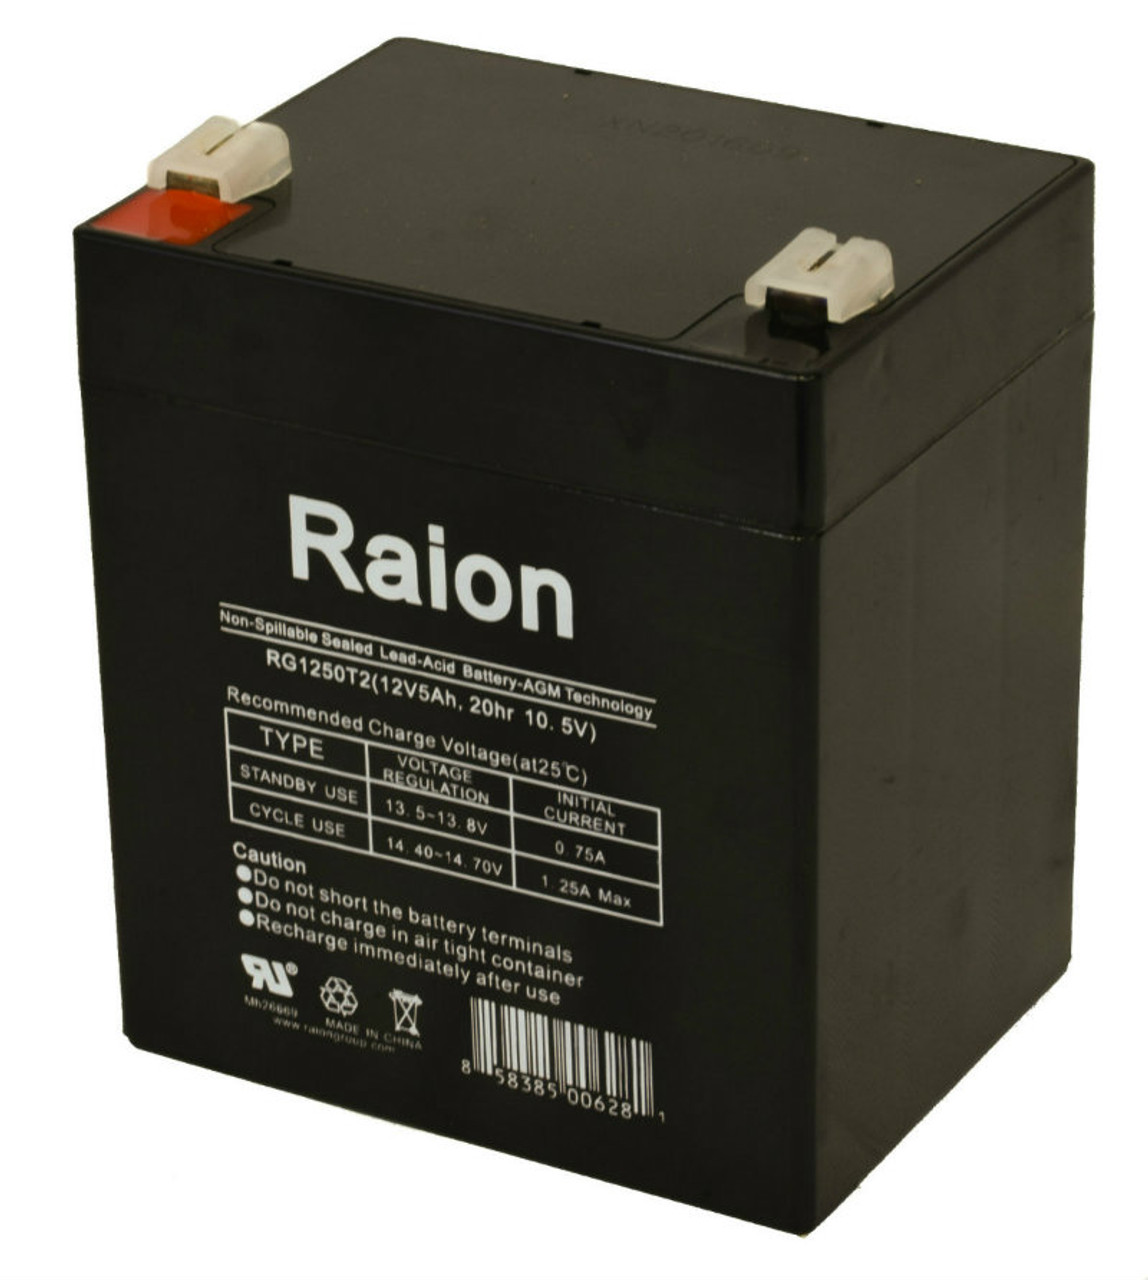 Raion Power 12V 5Ah SLA Battery With T1 Terminals For Vision CG12-5A